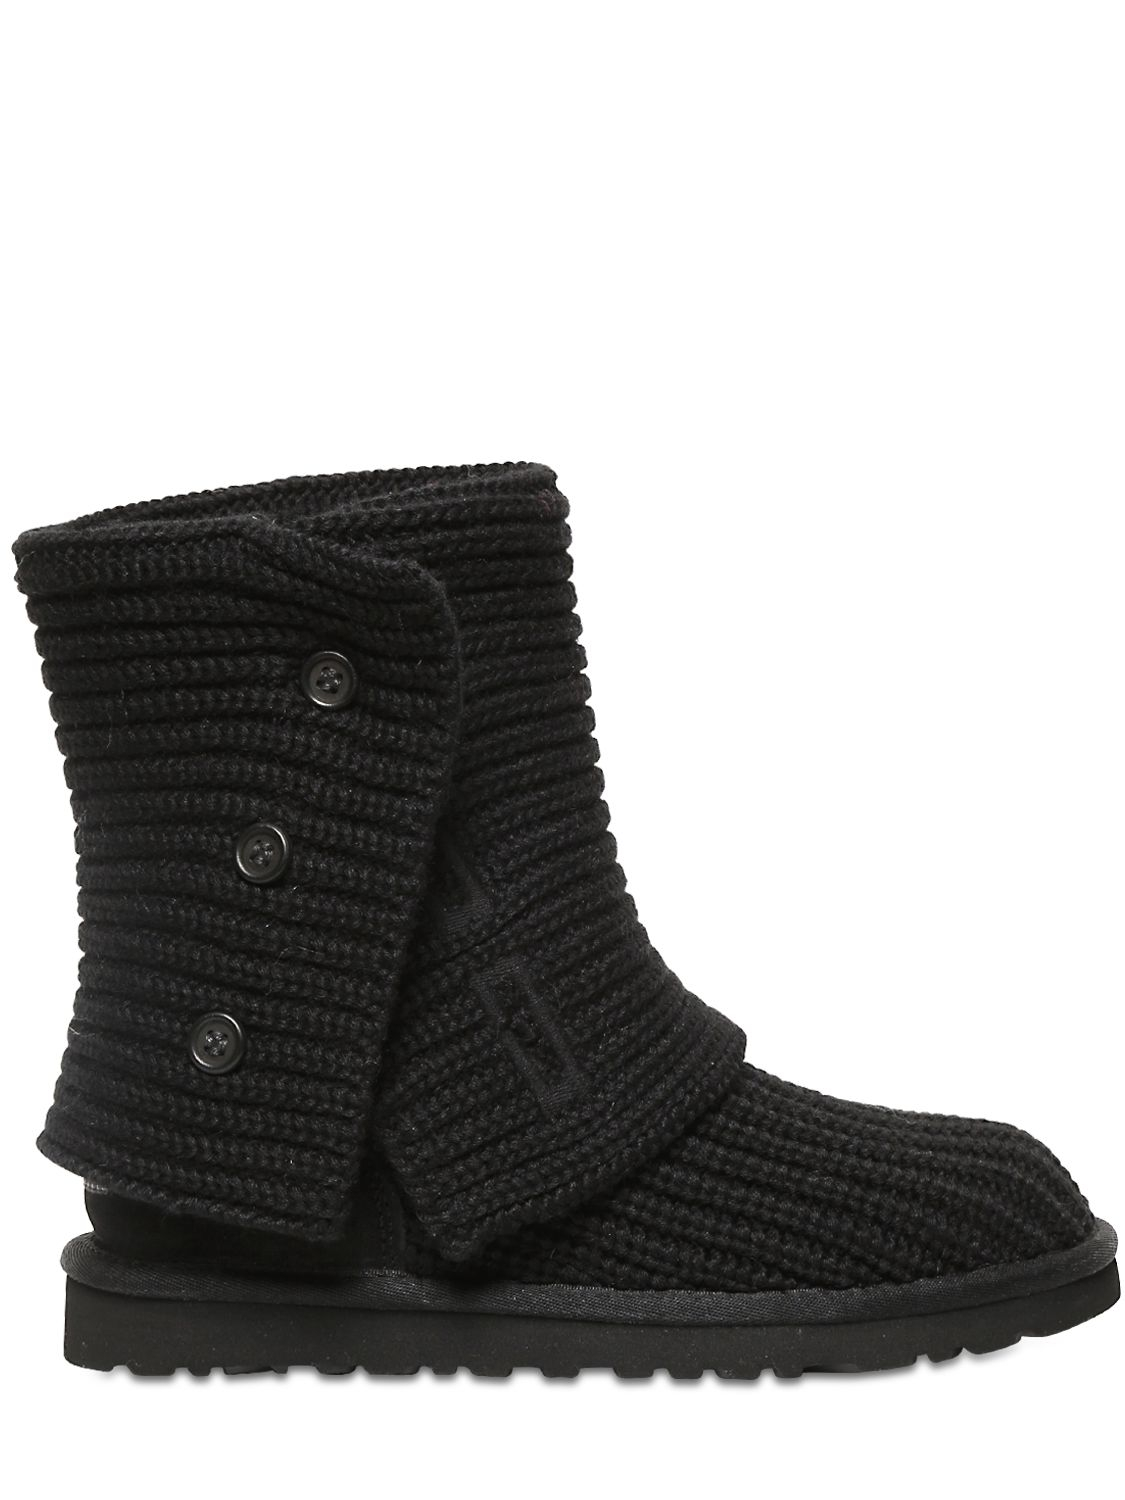 ugg cardy boots price